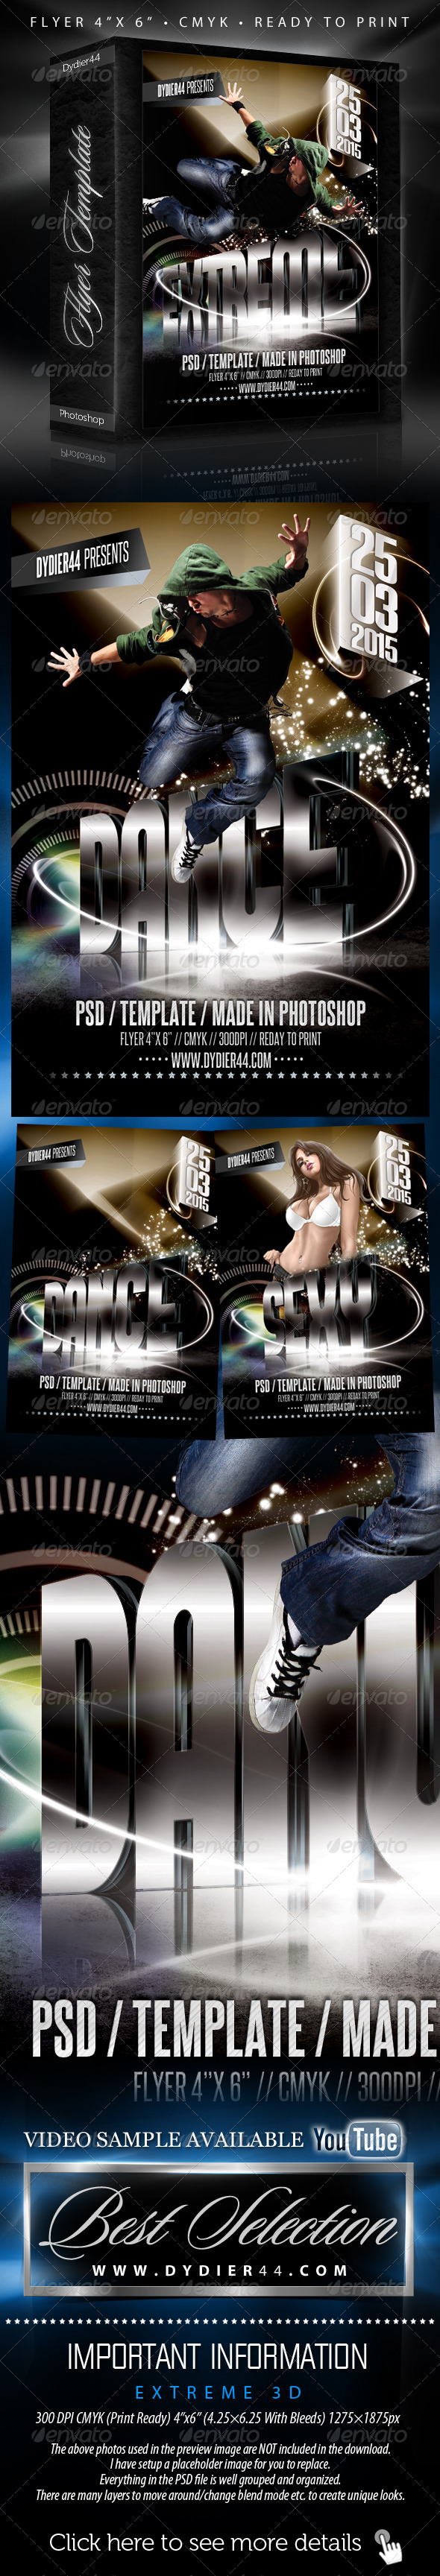 "Extreme 3D  (Flyer Template 4x6"") - Clubs & Parties Events"